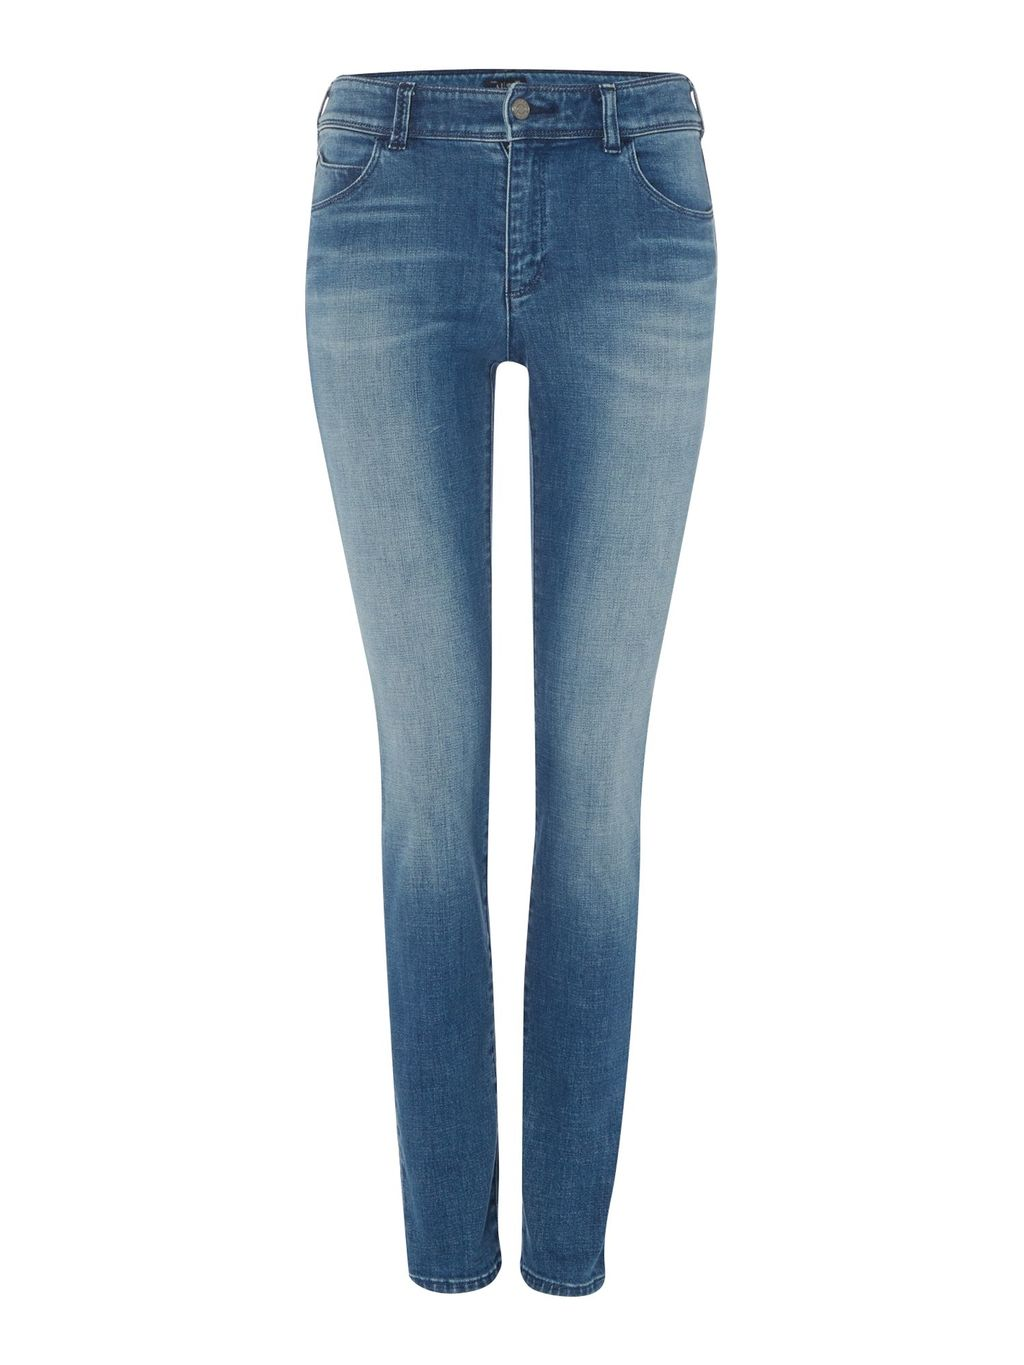 J20 Lilac High Rise Super Skinny, Denim Mid Wash - style: skinny leg; length: standard; pattern: plain; pocket detail: traditional 5 pocket; waist: mid/regular rise; predominant colour: denim; occasions: casual; fibres: cotton - stretch; jeans detail: shading down centre of thigh; texture group: denim; pattern type: fabric; wardrobe: basic; season: a/w 2016